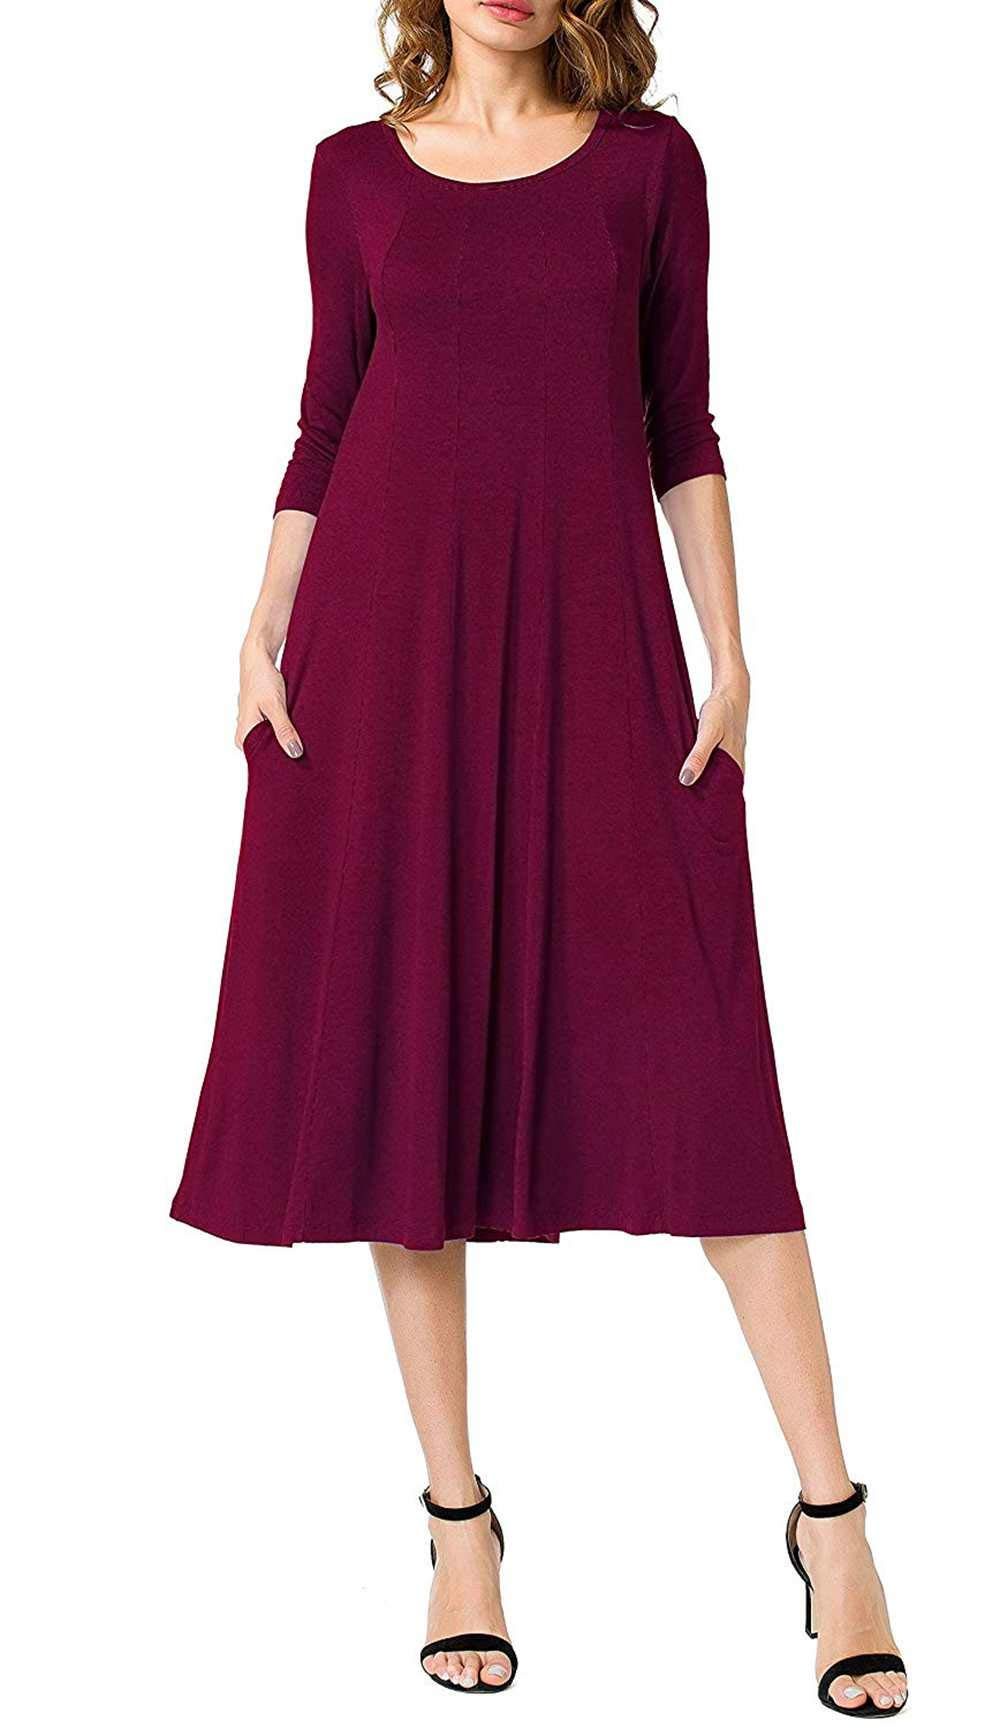 Women's Maxi Dress, Spring Autumn 3/4 Sleeve Solid Color Round Neck Casual Long Dresses (S, Wine red)